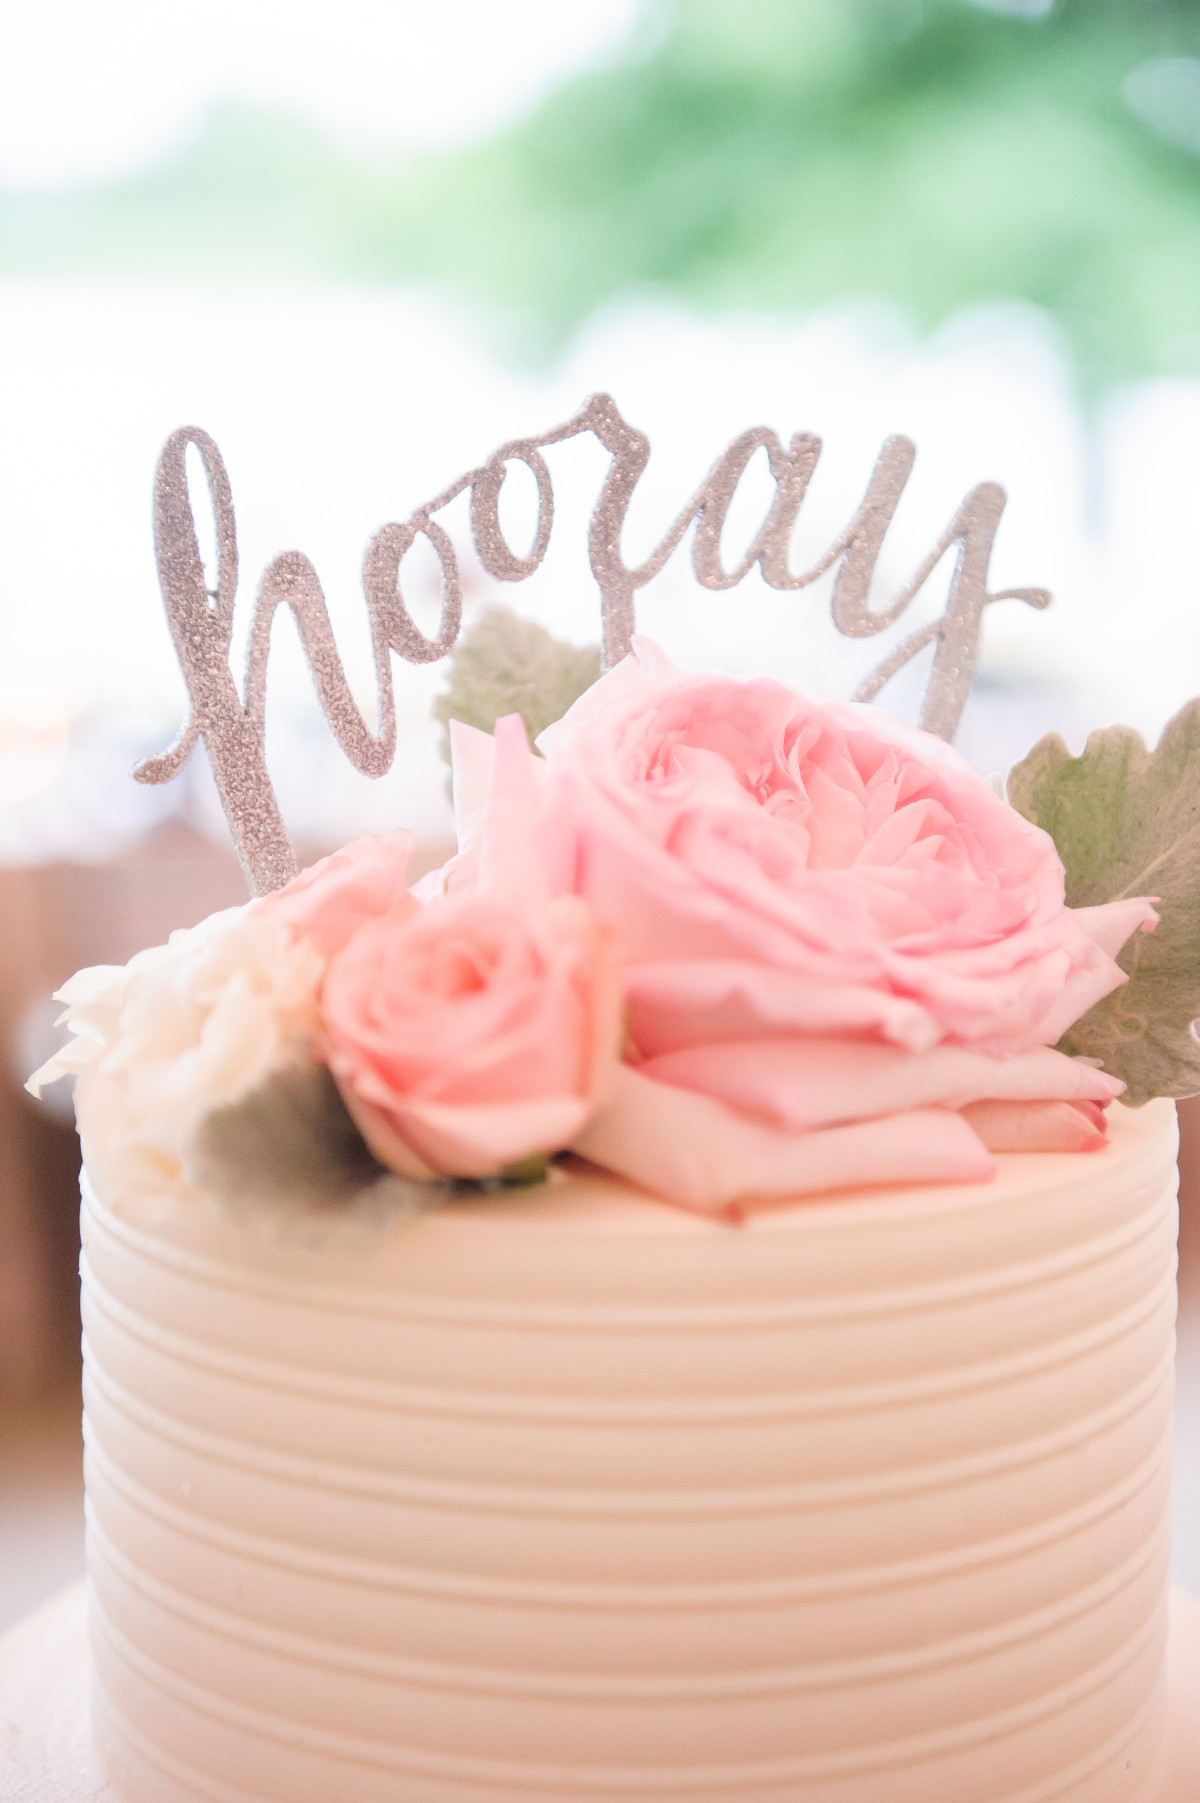 Wedding Cakes Archives - Page 4 of 8 - Elysia Root Cakes